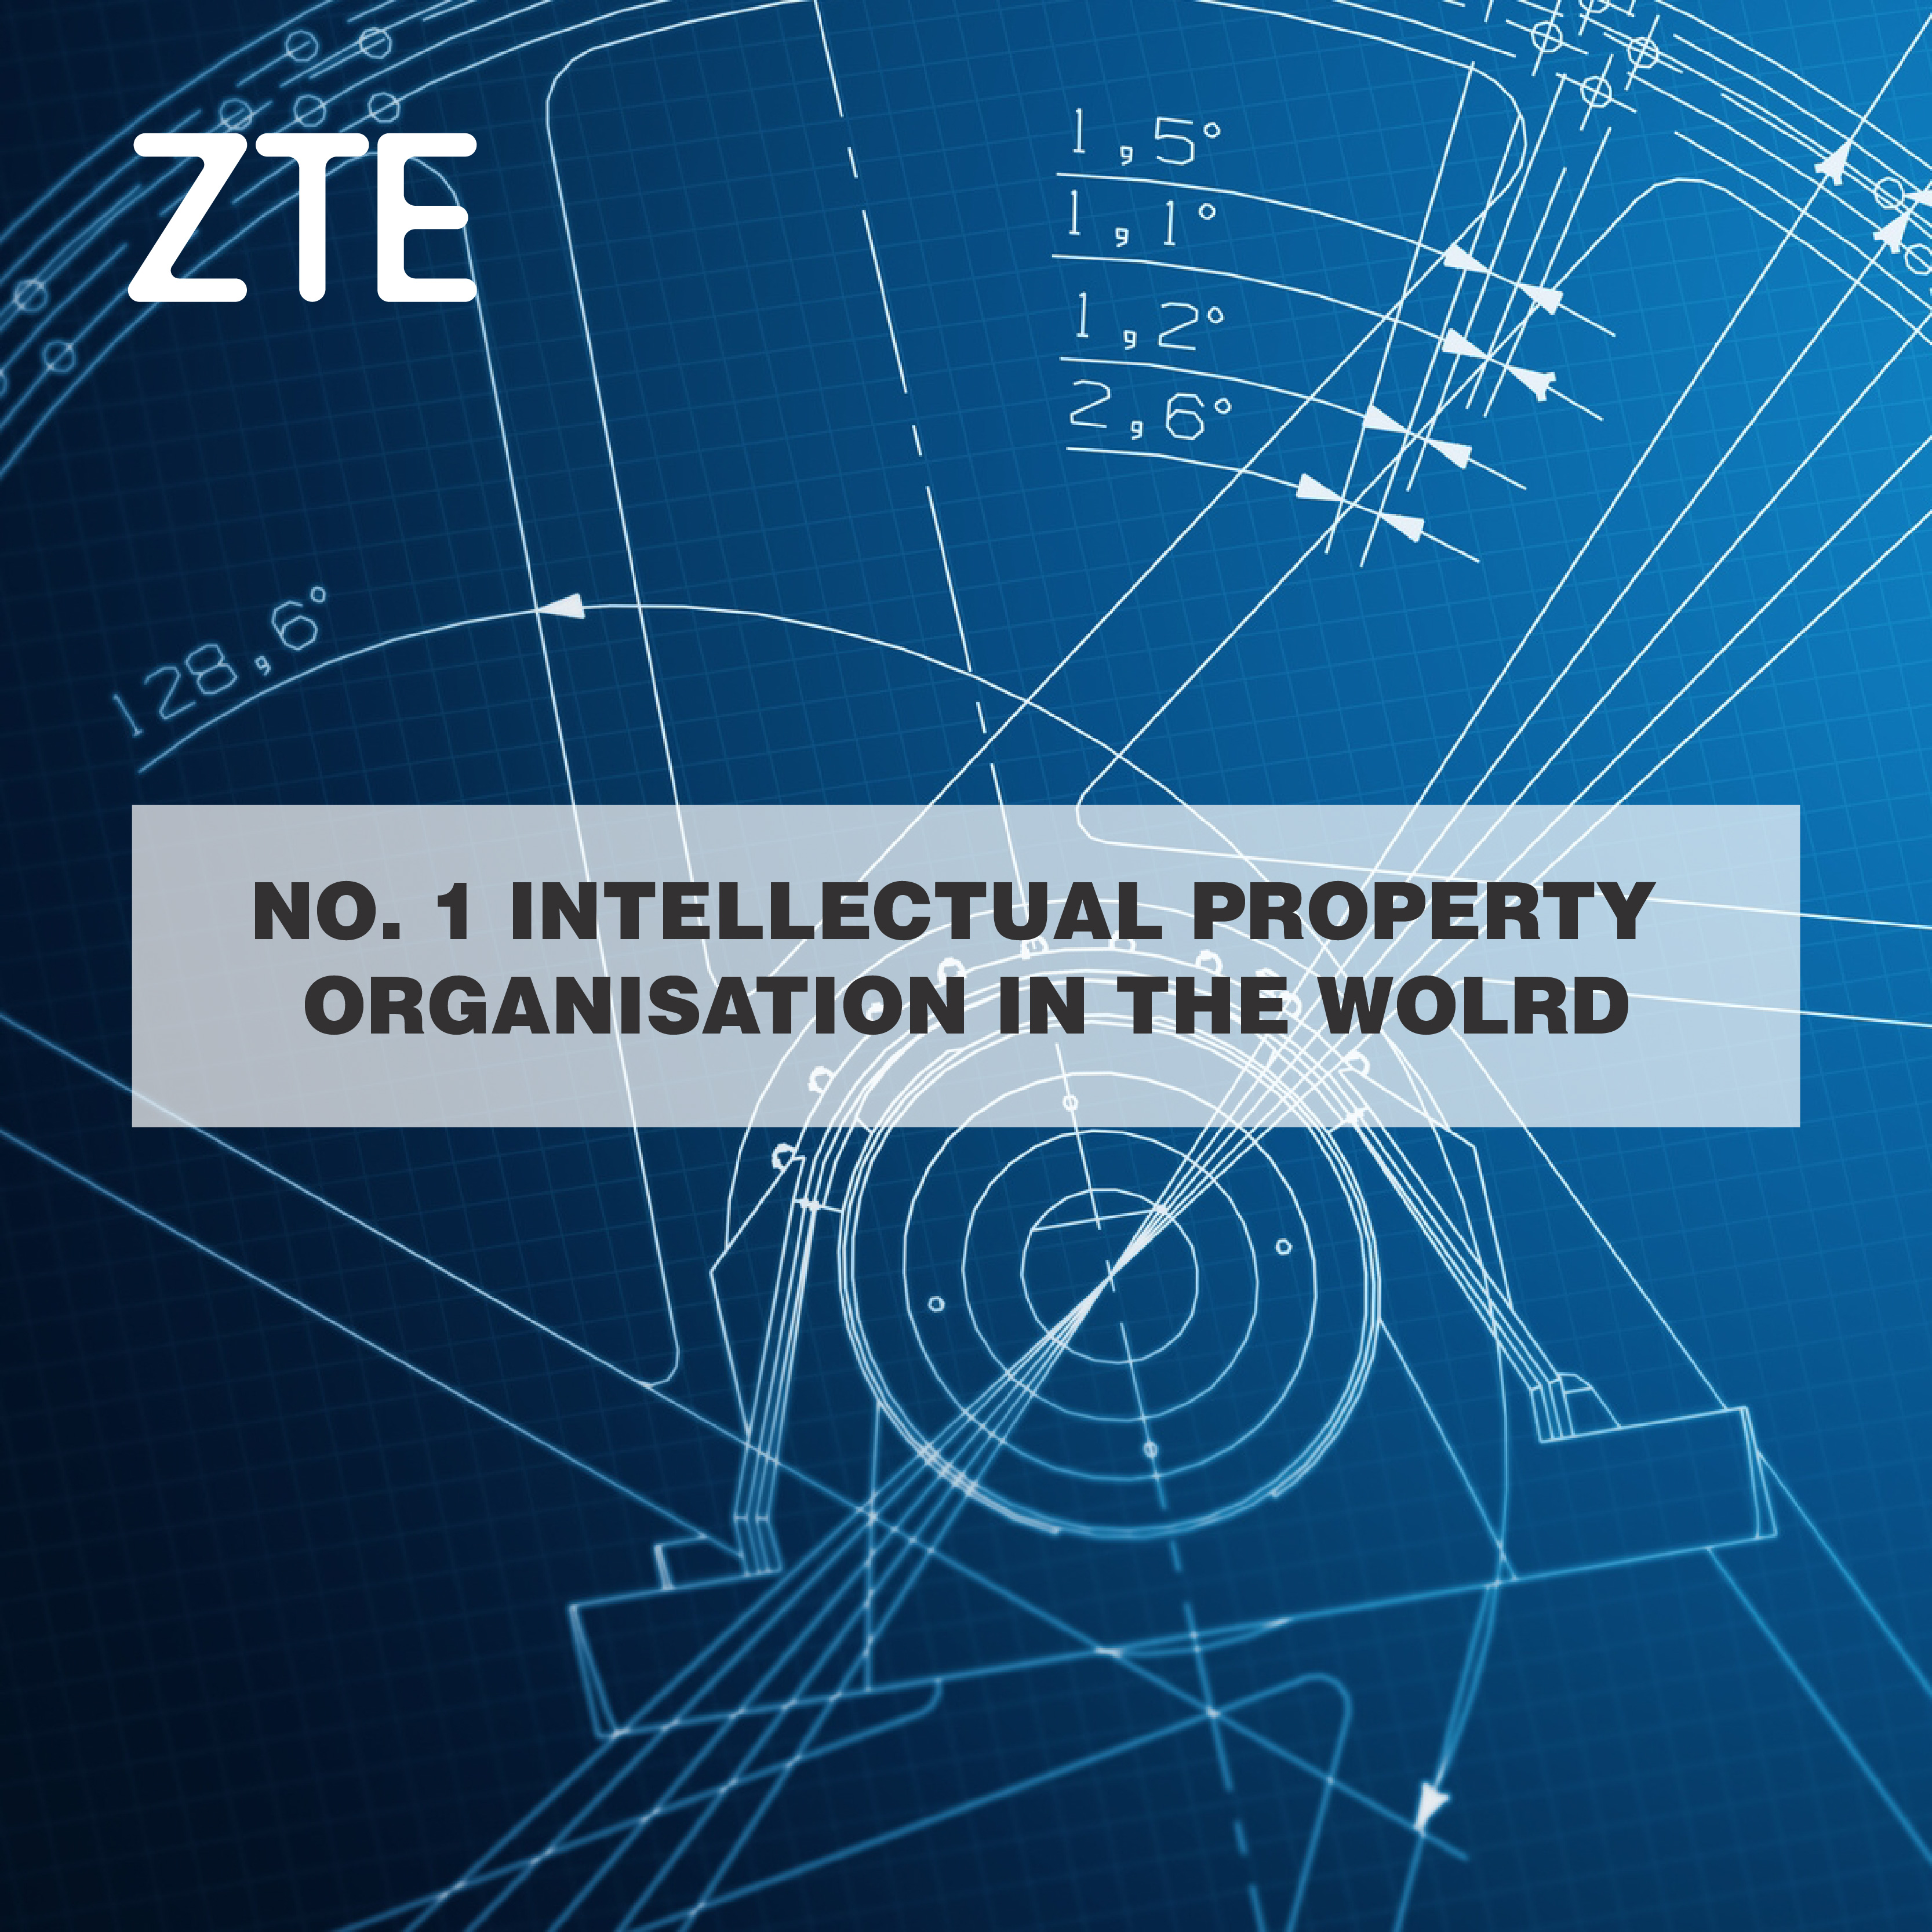 Intellectual Property Patent: ZTE Moves To No. 1 In World Intellectual Property